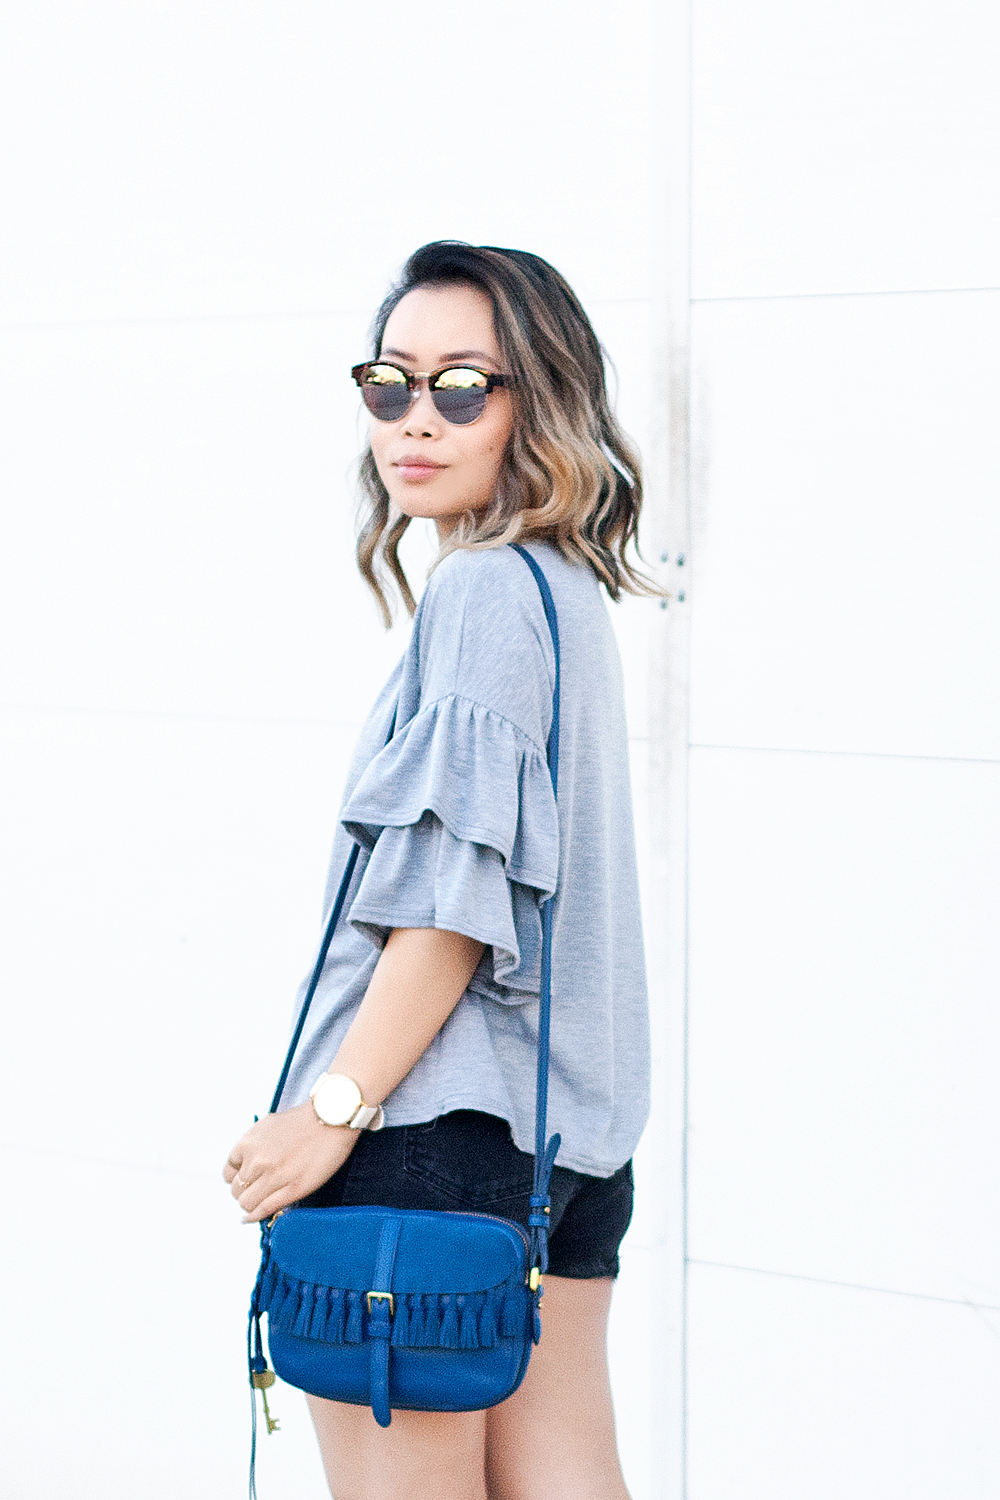 05fossil-blue-ruffles-denim-sf-fashion-style